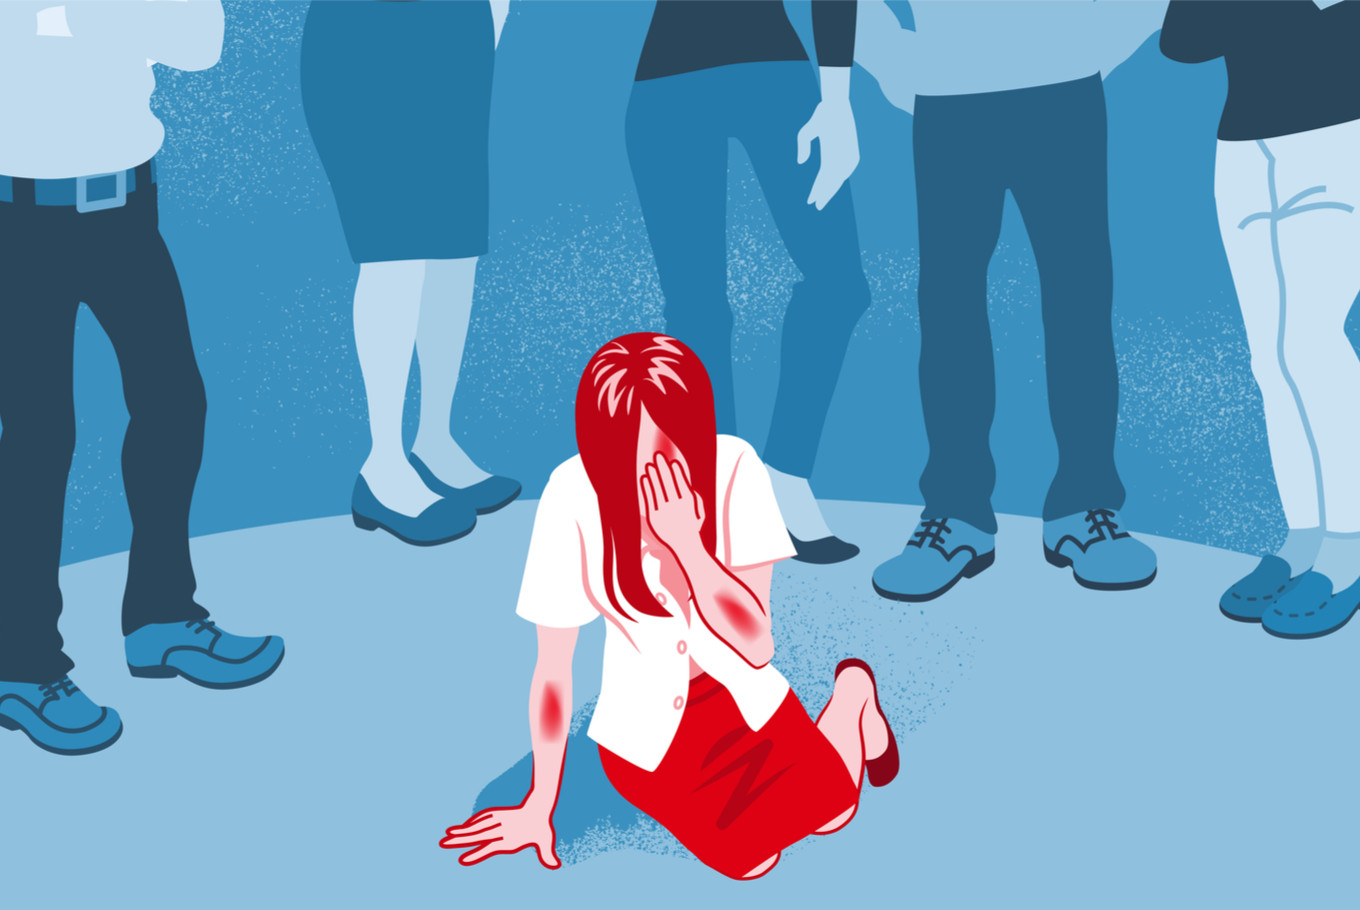 Victim blaming obvious no-no. What about victim protection? - Opinion - The  Jakarta Post